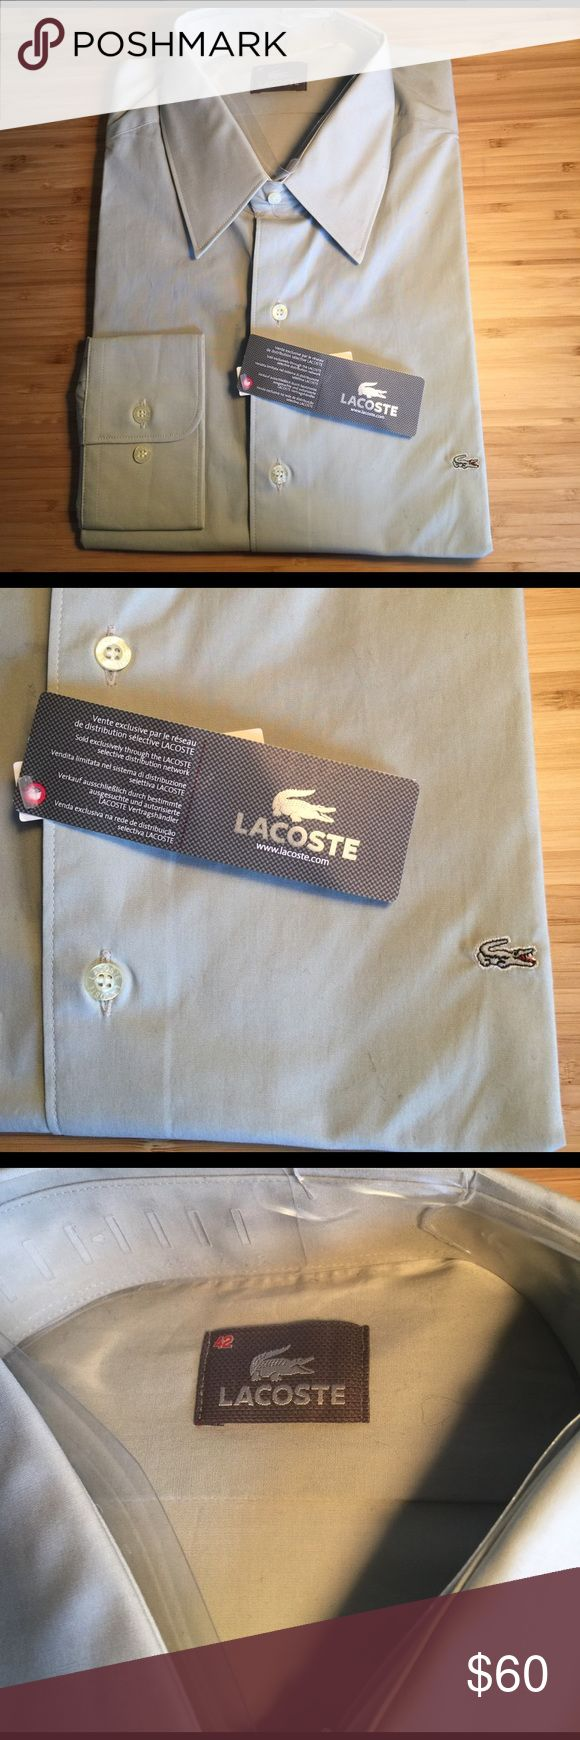 NWT Lacoste men's dress shirt size 42 NWT Lacoste long sleeve dress shirt. Elastane and cotton blend for a more fitted look! Lacoste Shirts Dress Shirts